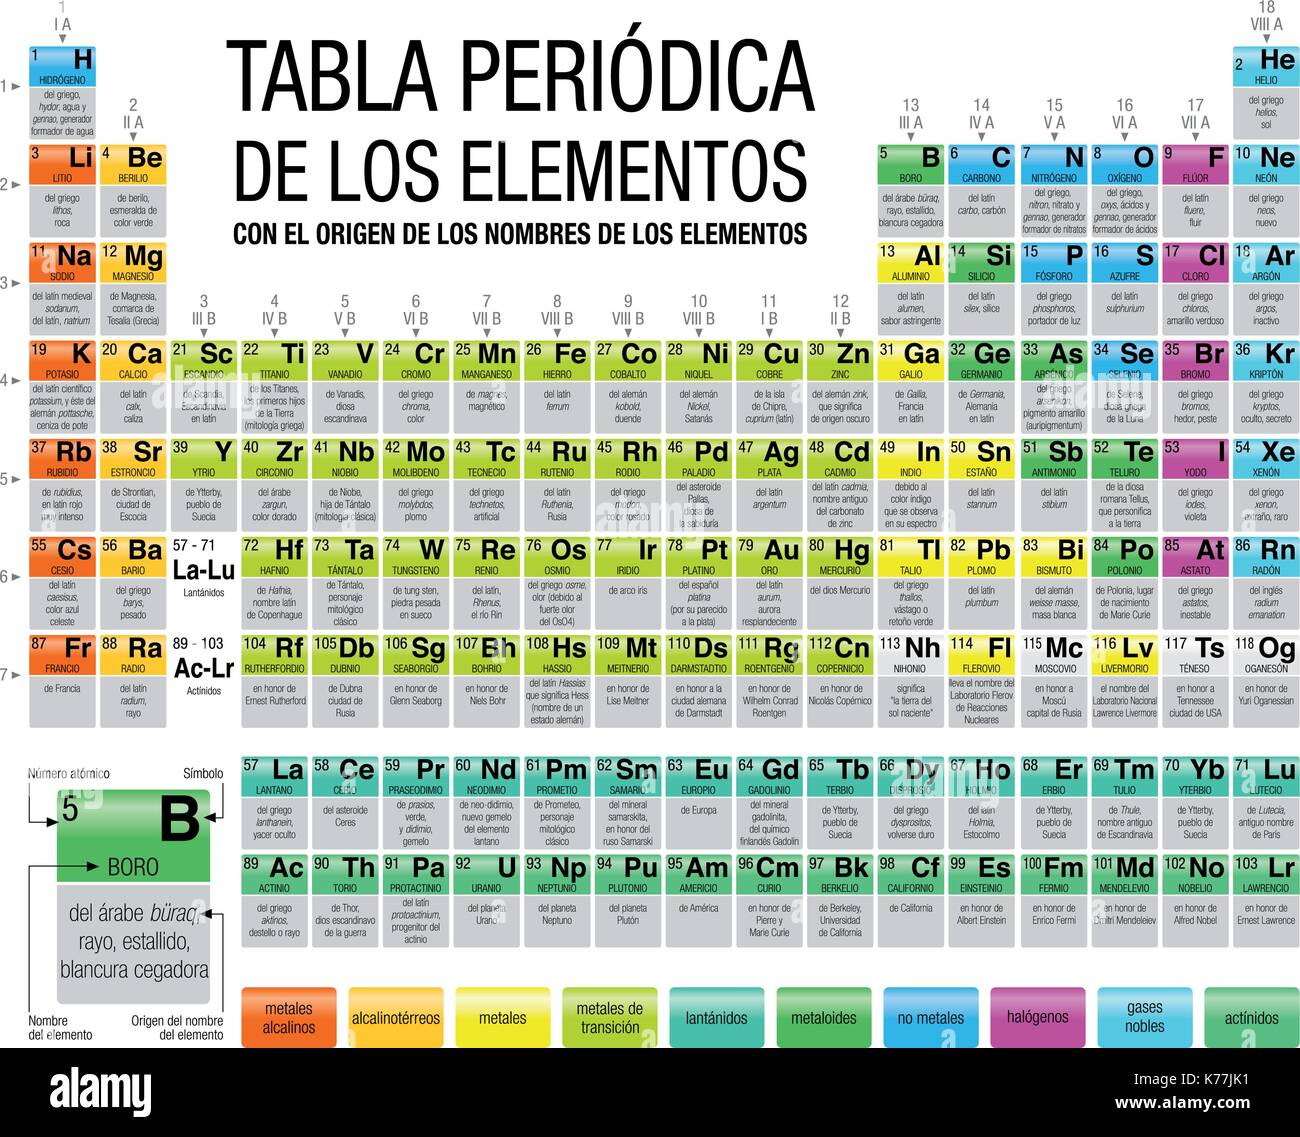 Tabla peridica de los elementos con el origen de los nombres de los tabla peridica de los elementos con el origen de los nombres de los elementos periodic table of elements with the origin of the names of the element urtaz Image collections